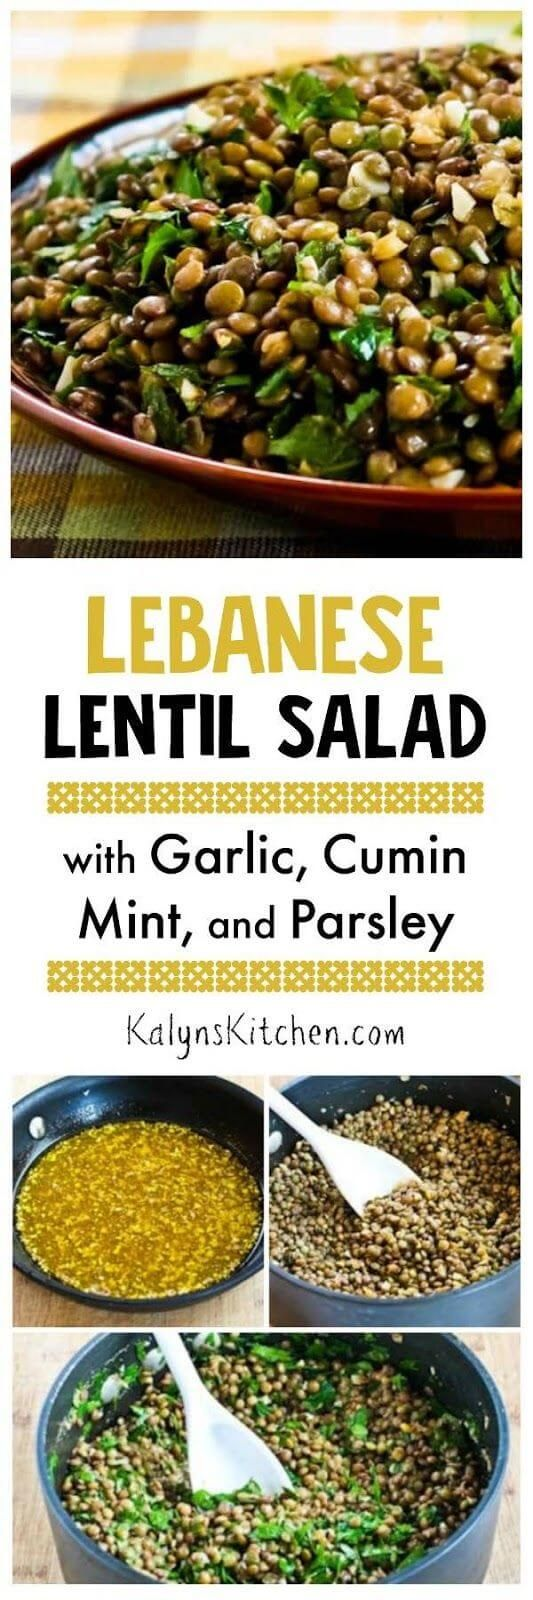 nice Lebanese Lentil Salad with Garlic, Cumin, Mint, and Parsley